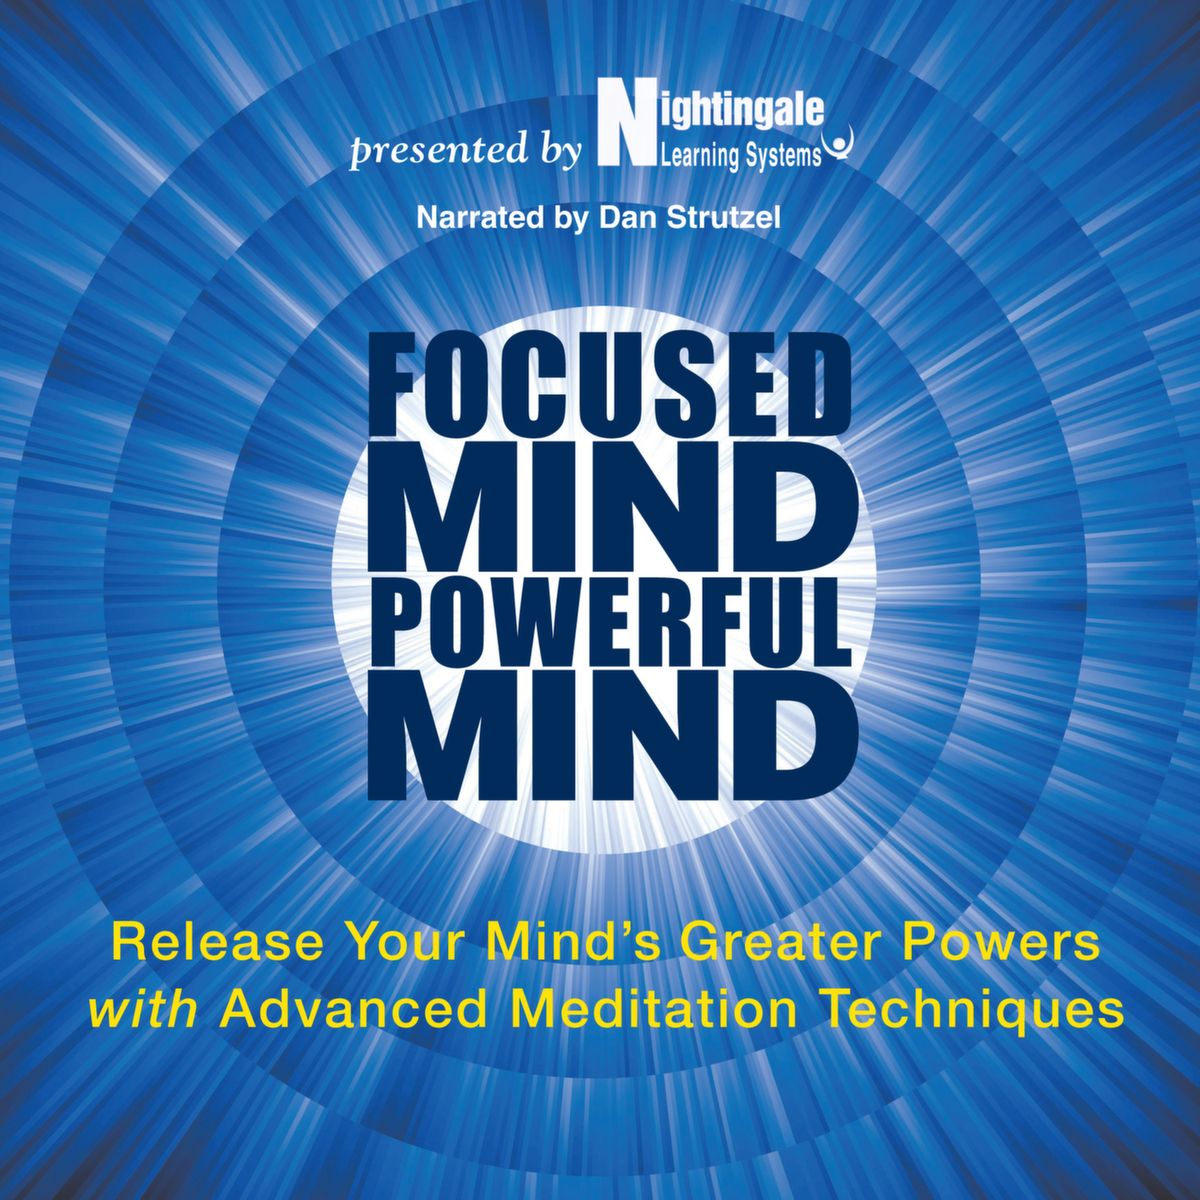 Focused Mind, Powerful Mind